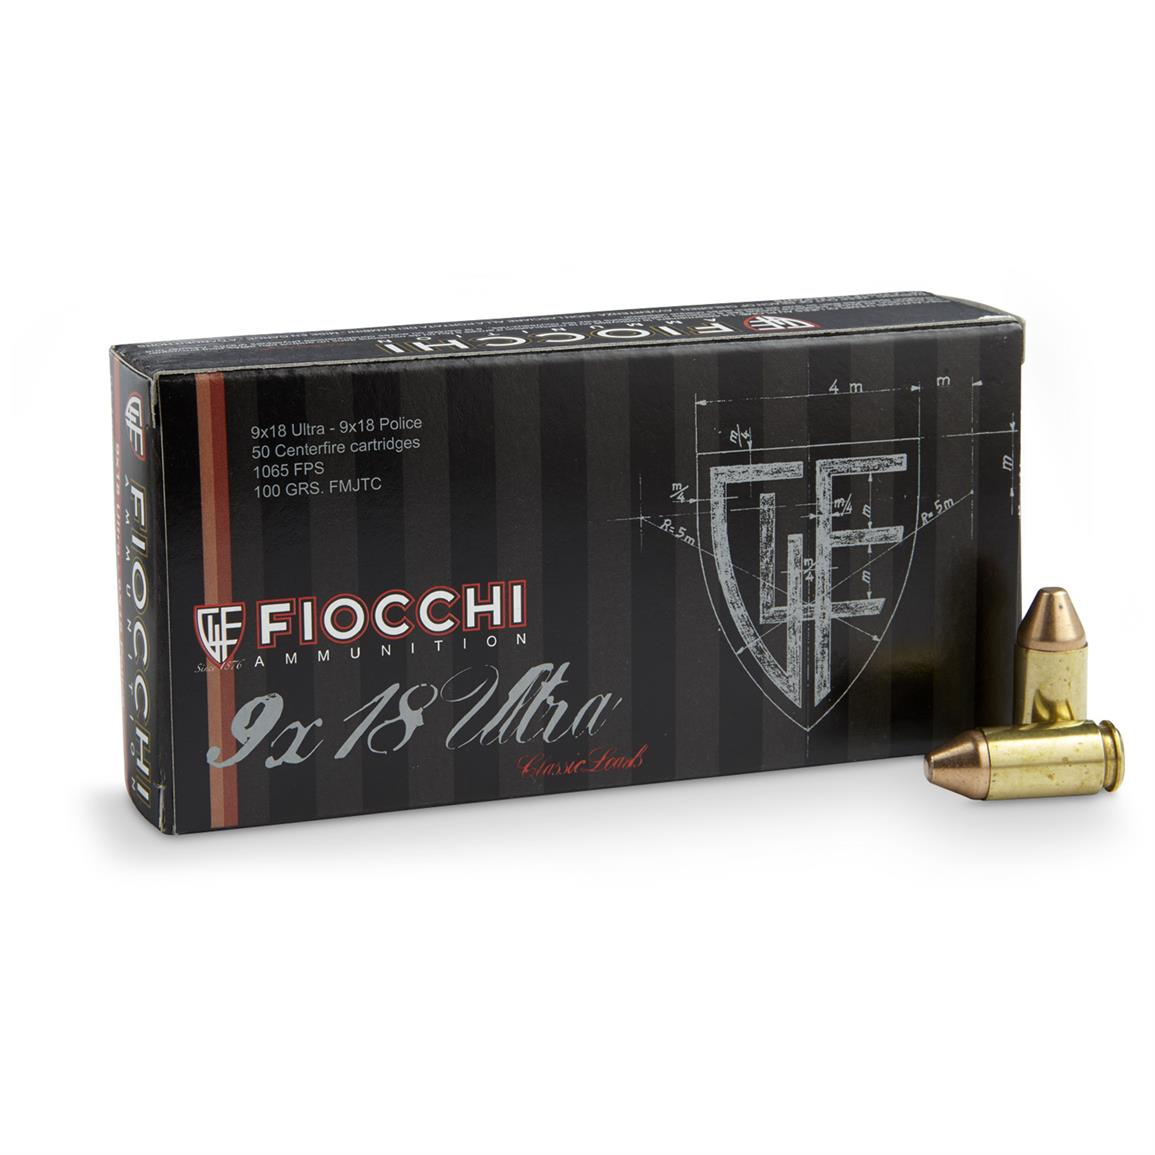 Fiocchi Specialty 9x18 Ultra (Police) 100 Grain FMJTC 50 rounds